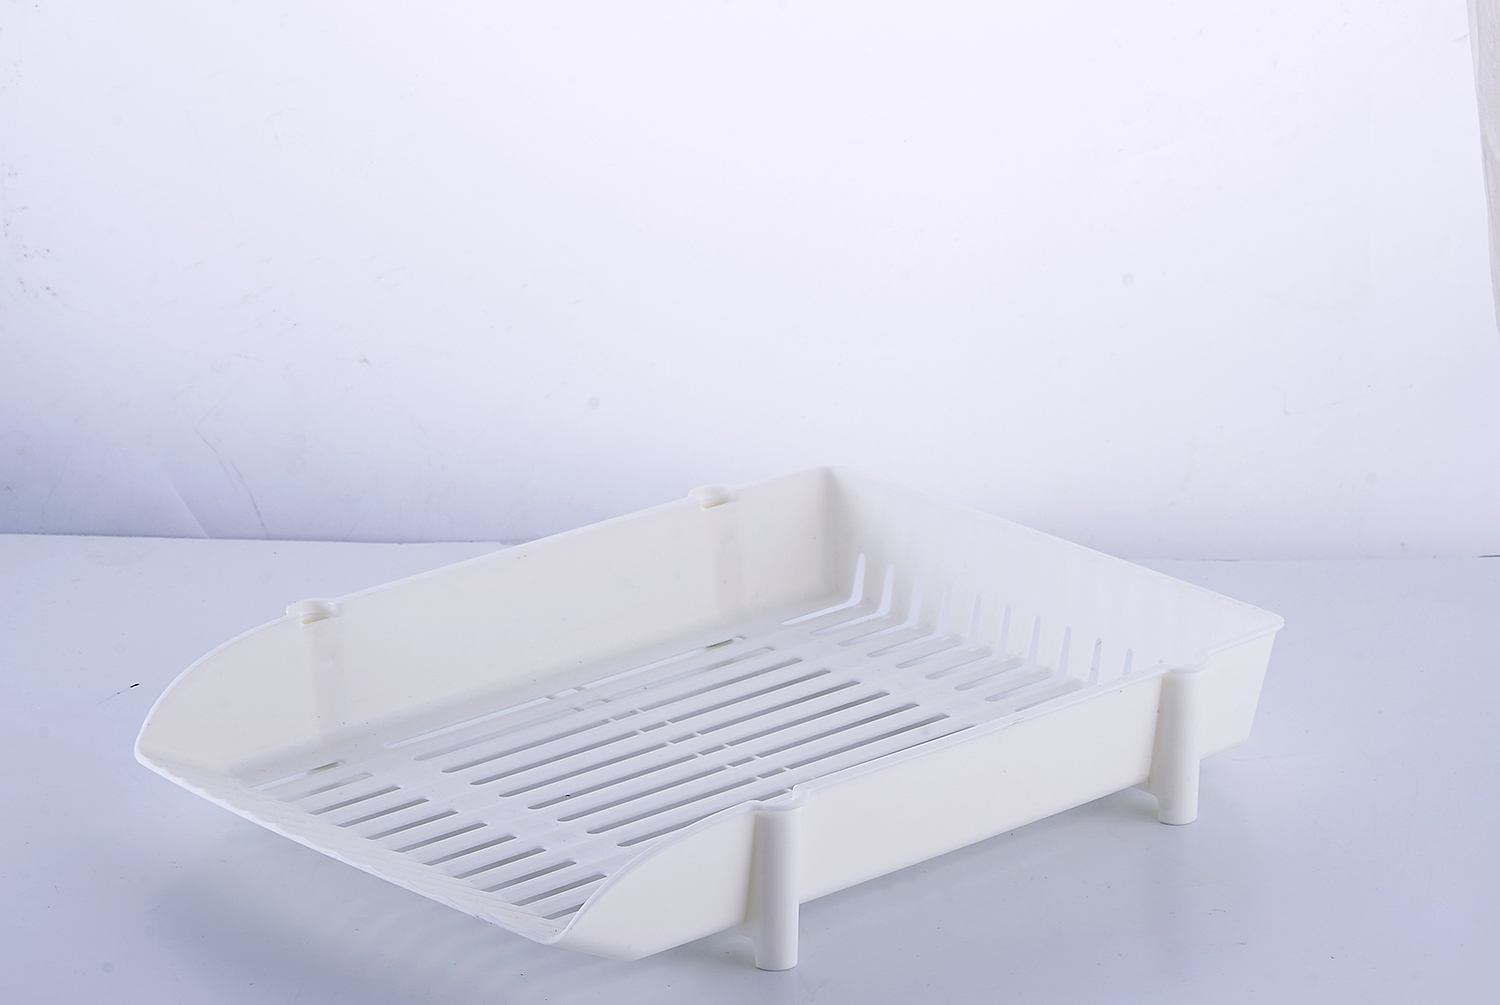 Plastic Document File Tray